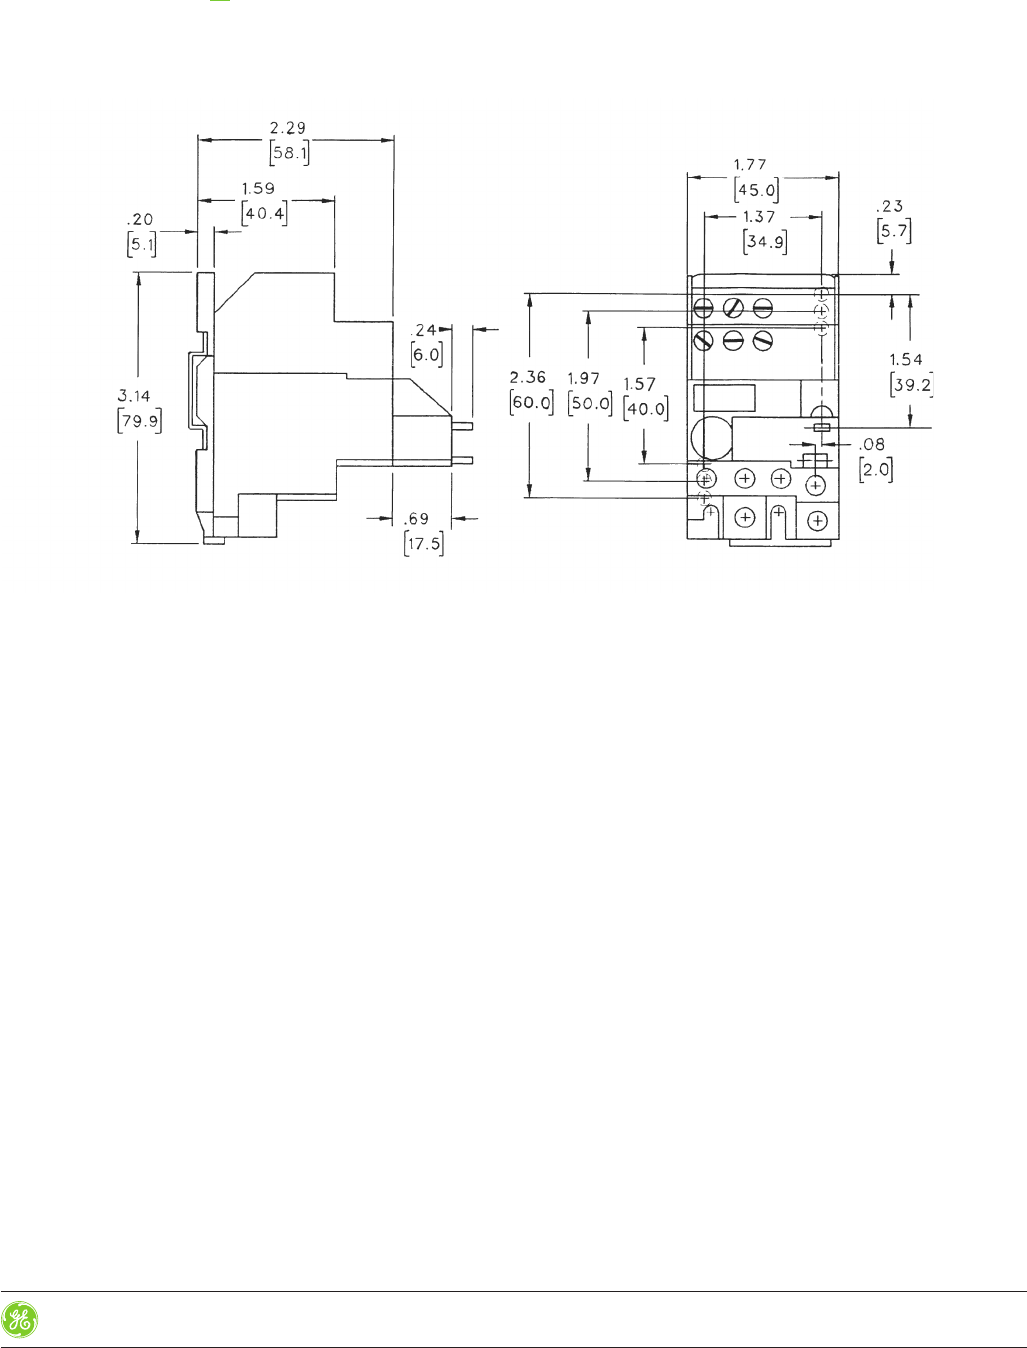 ge control catalog section 5 145378 Schematic Circuit Diagram product number selection instructions see page 5 6